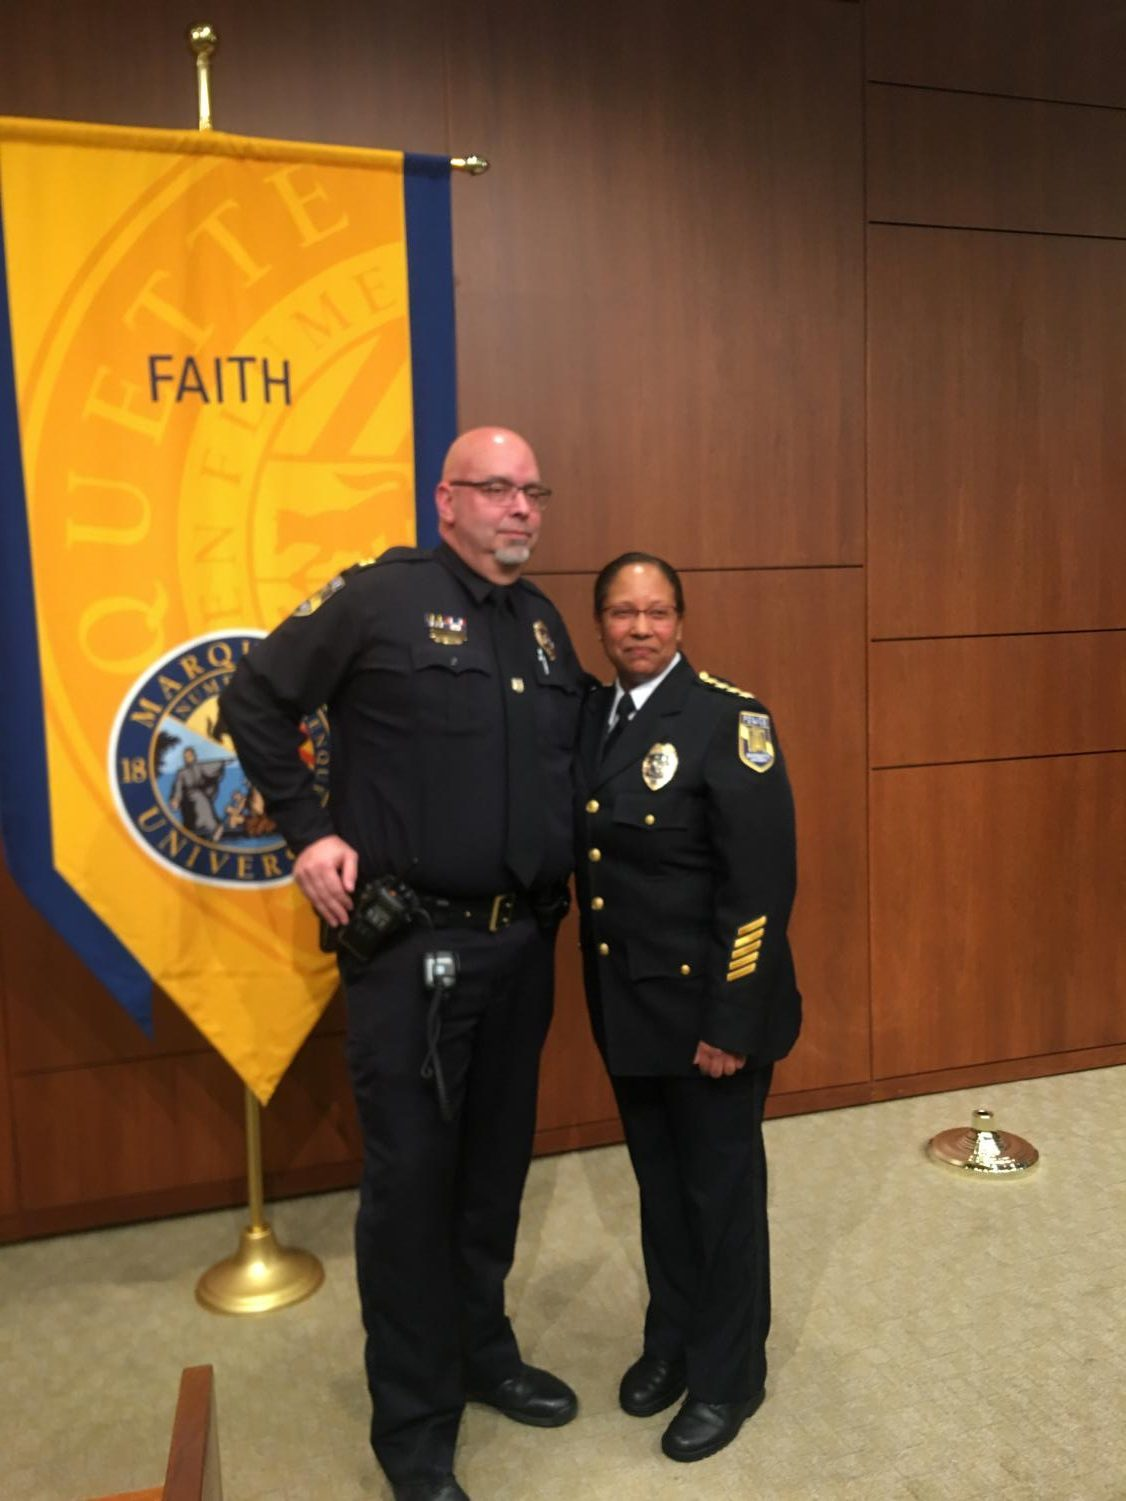 Former interim chief Capt. Jeff Kranz (left) poses for a photo with Chief Edith Hudson, who was sworn in Monday afternoon.